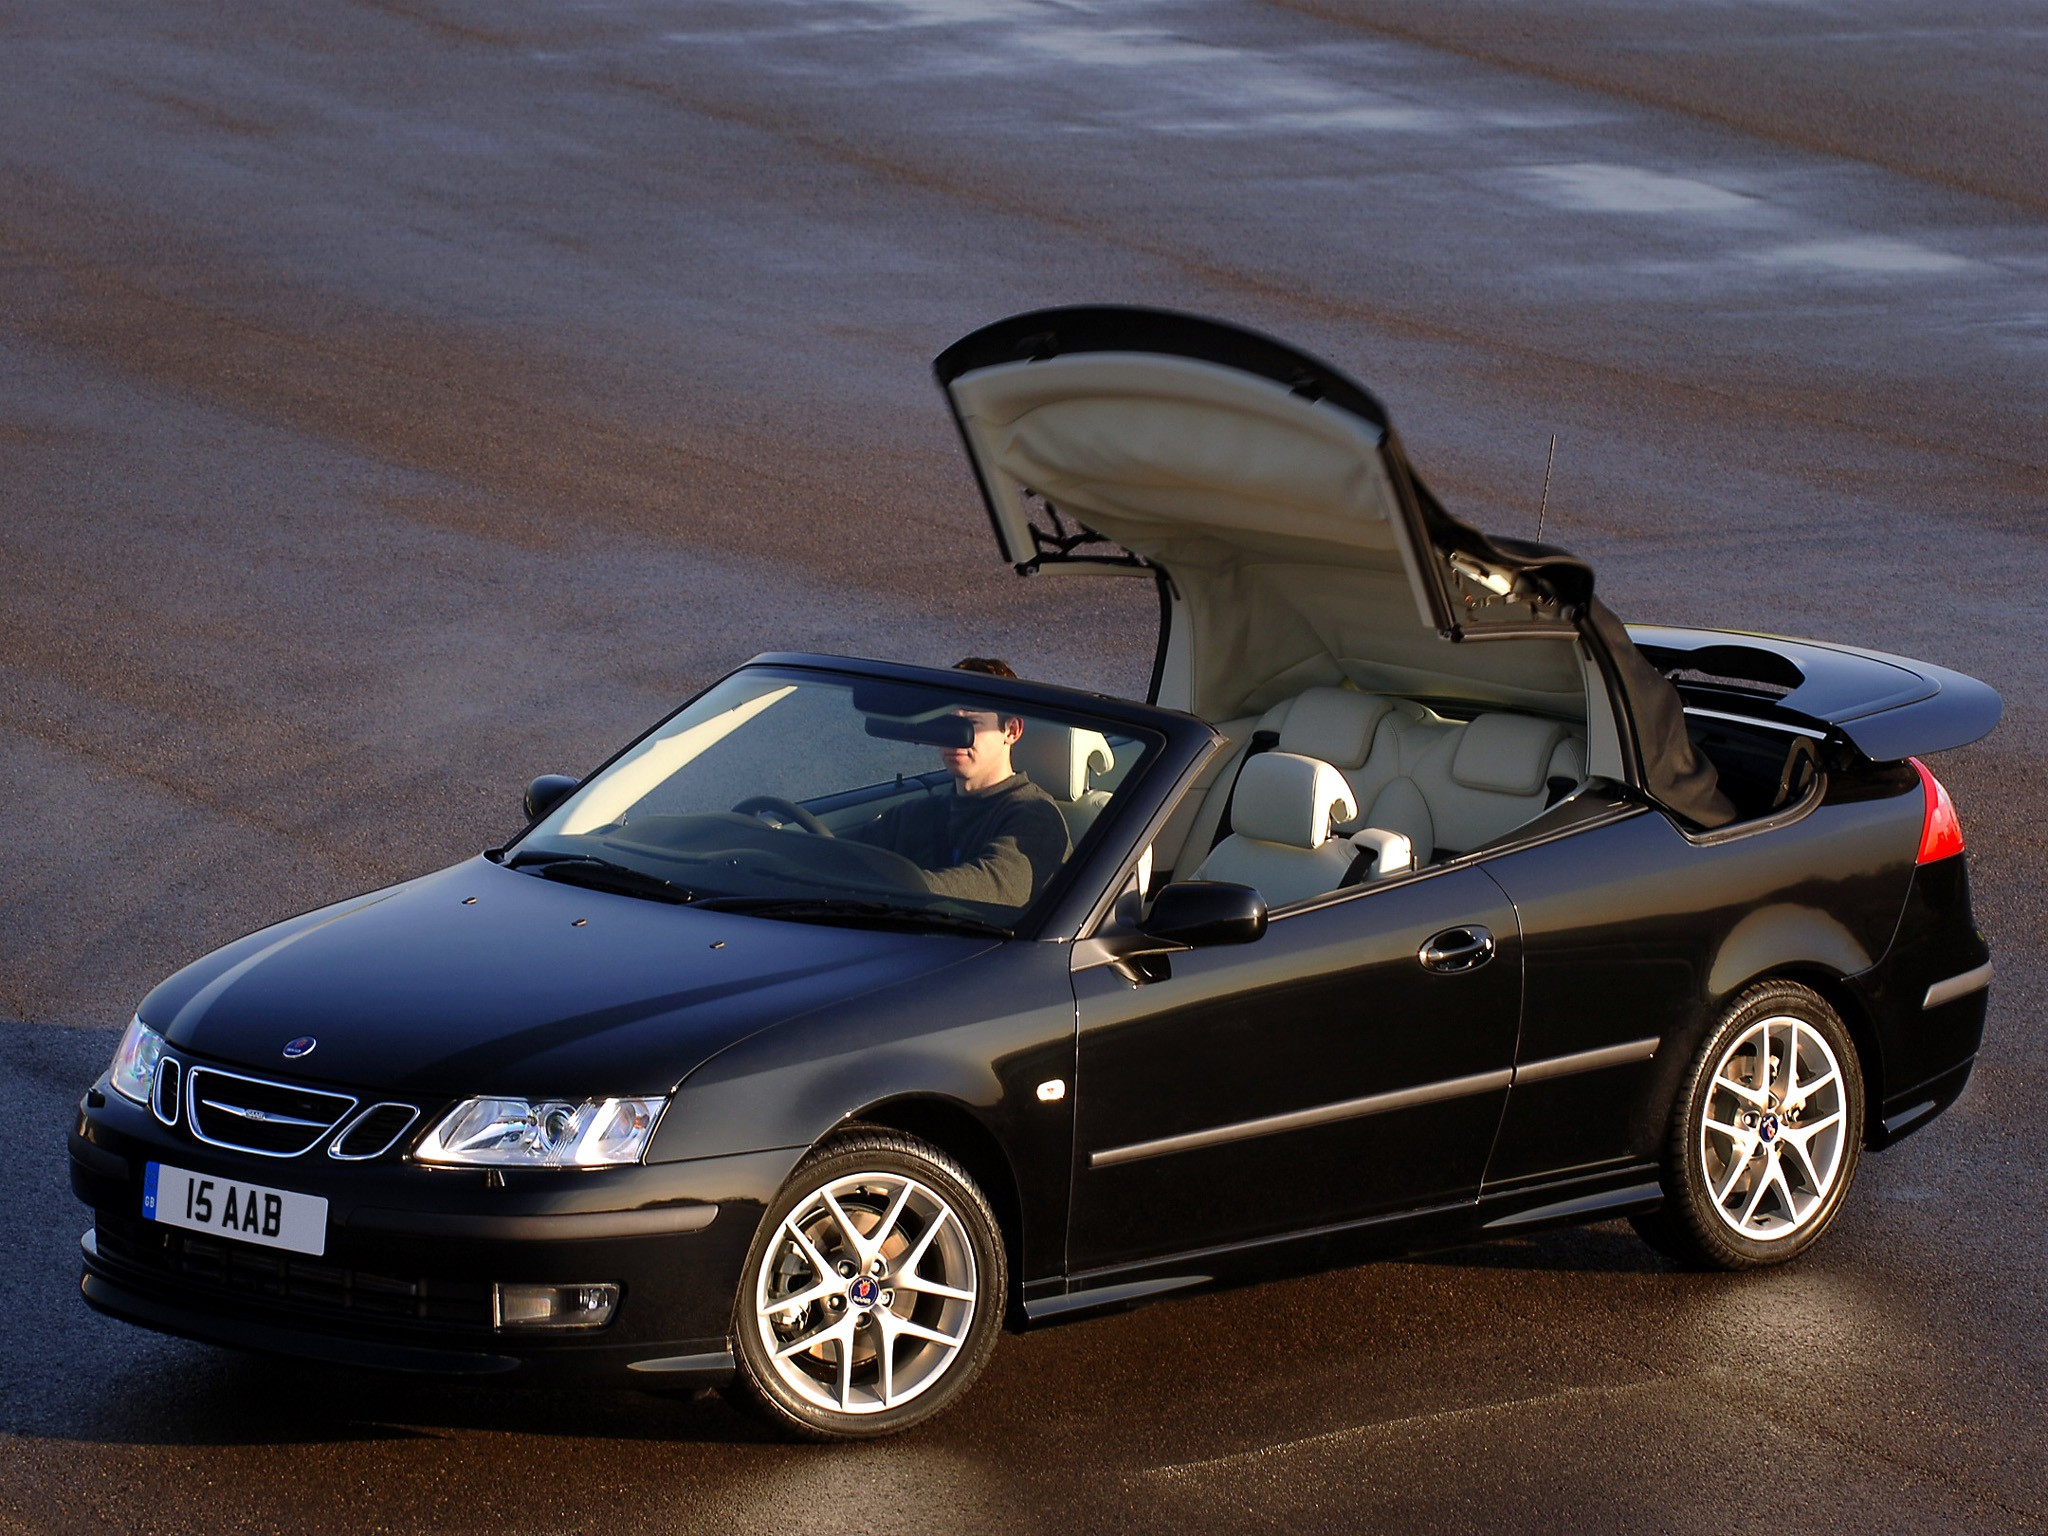 saab 9 3 aero convertible specs 2003 2004 2005 2006 2007 2008 2009 autoevolution. Black Bedroom Furniture Sets. Home Design Ideas